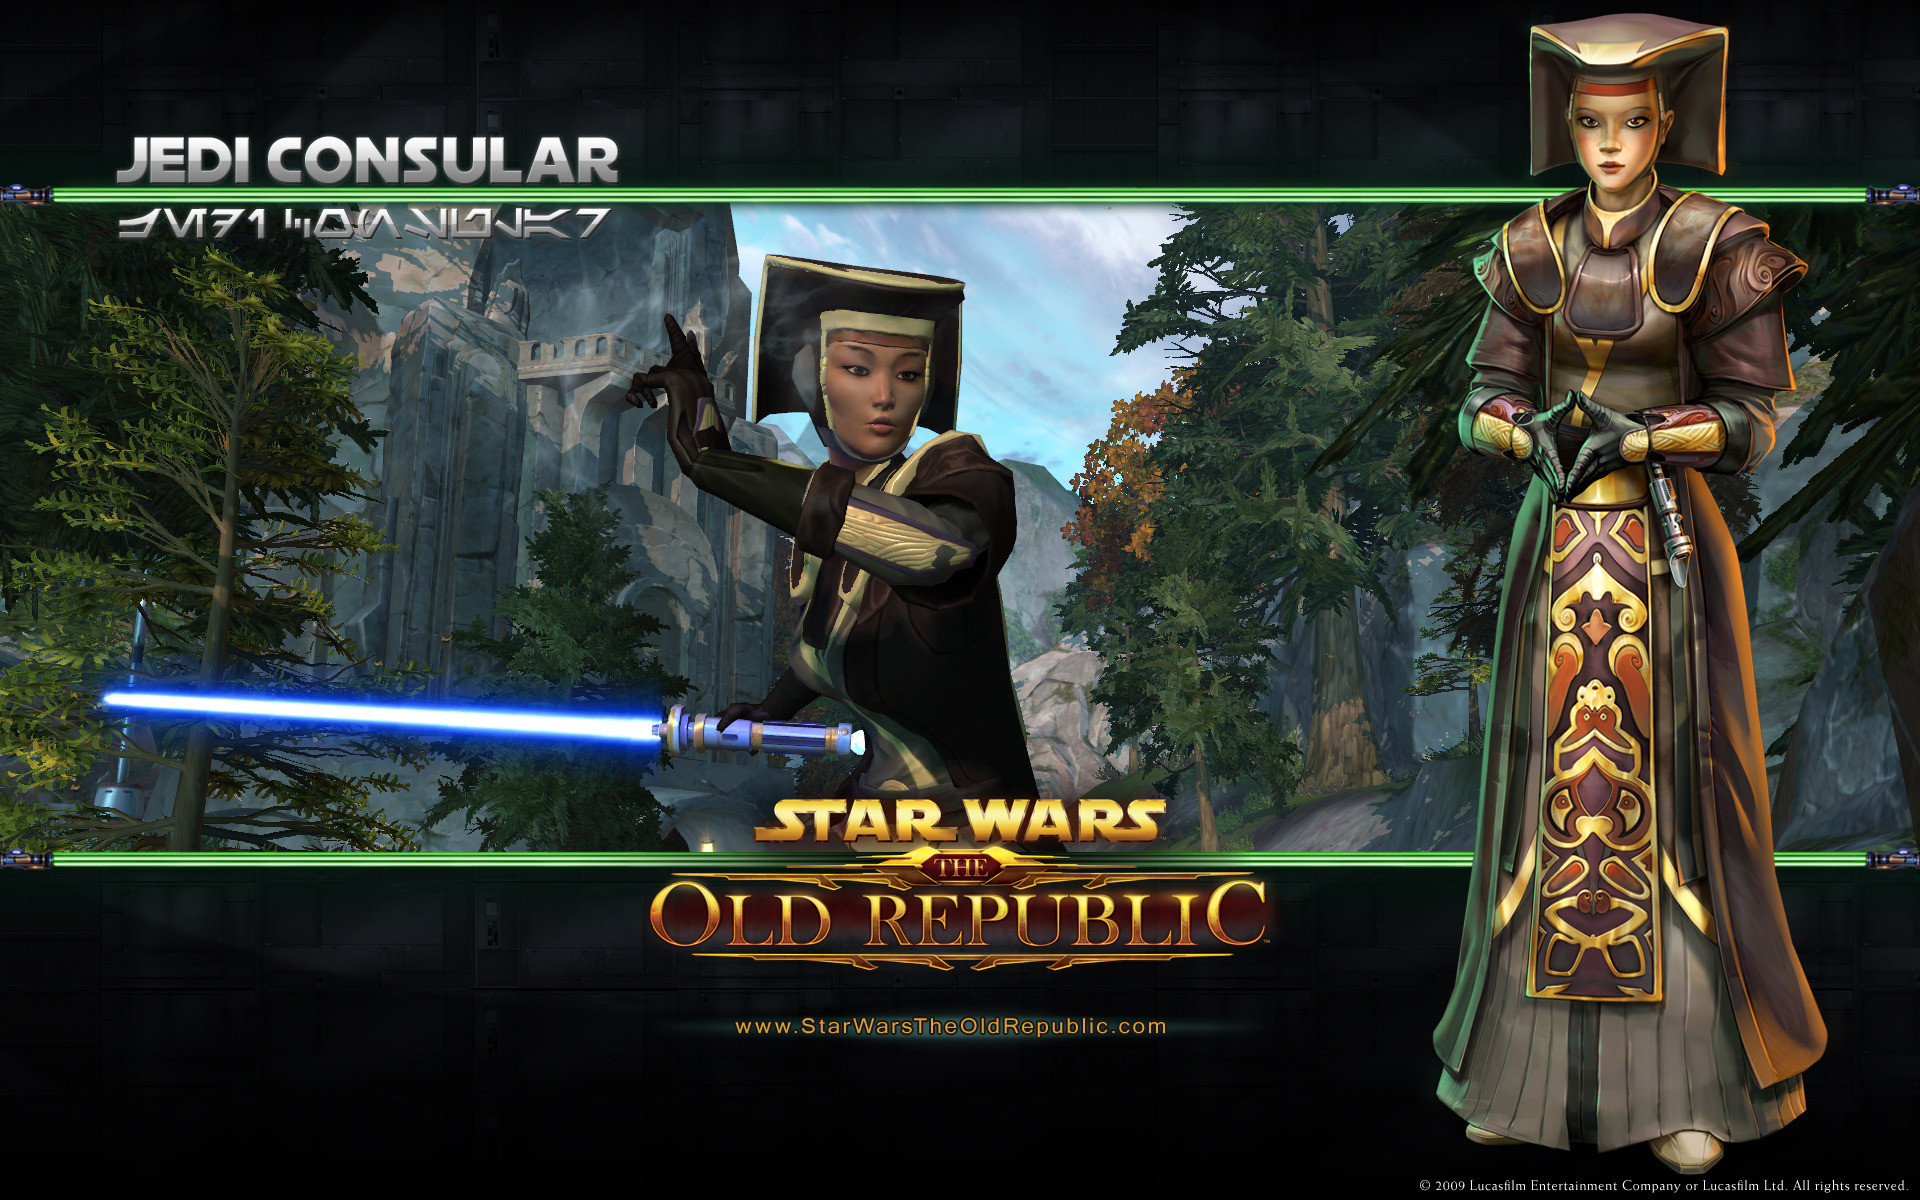 1920x1200 Star Wars The Old Republic Jedi Consular wallpaper - 468757